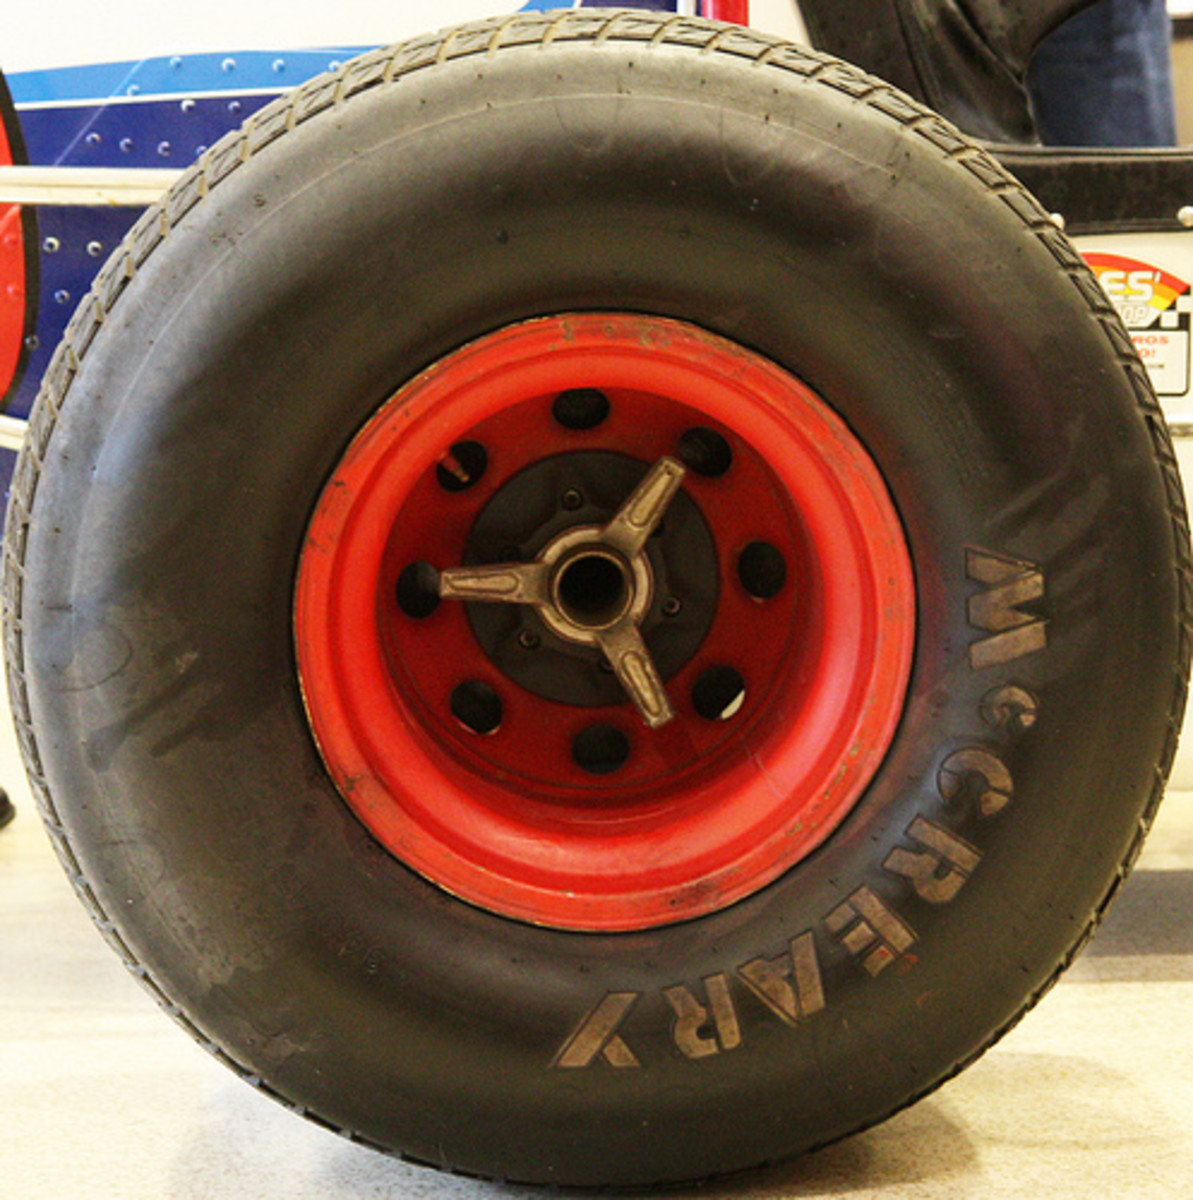 Sprint Car Tire (Photo courtesy by J from Flickr)